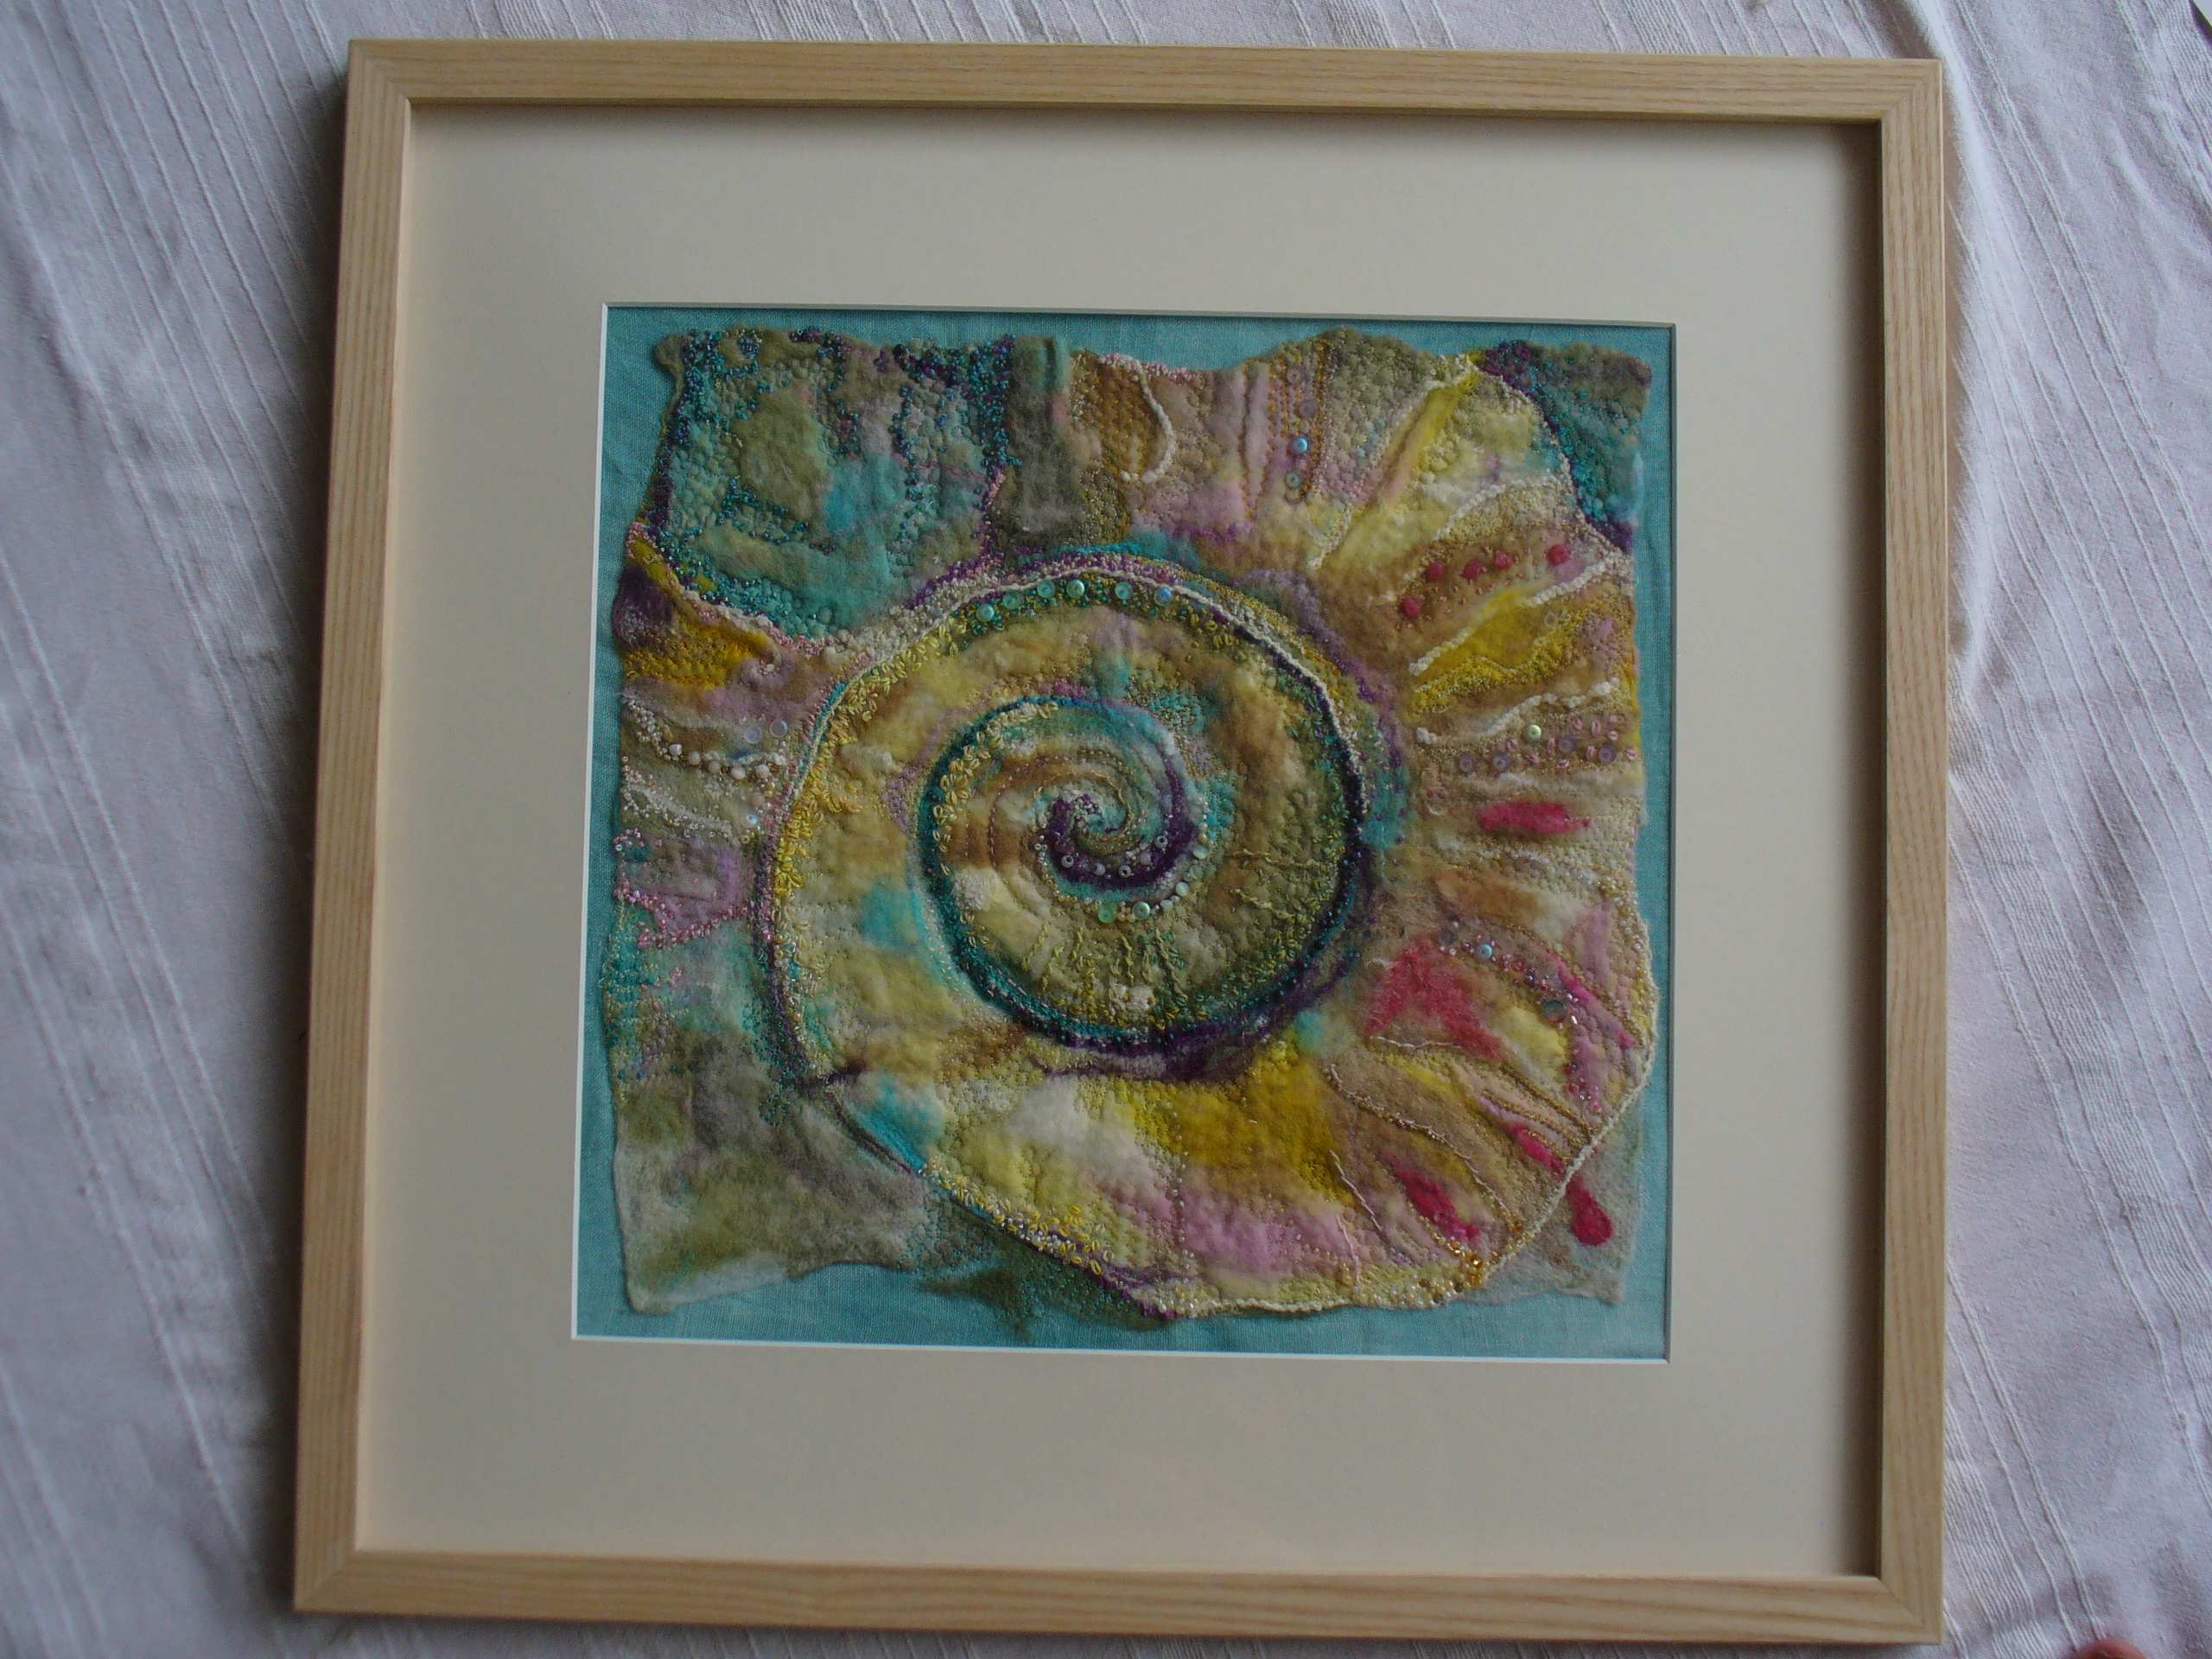 Spiral Fossil by Liz Shelbourne